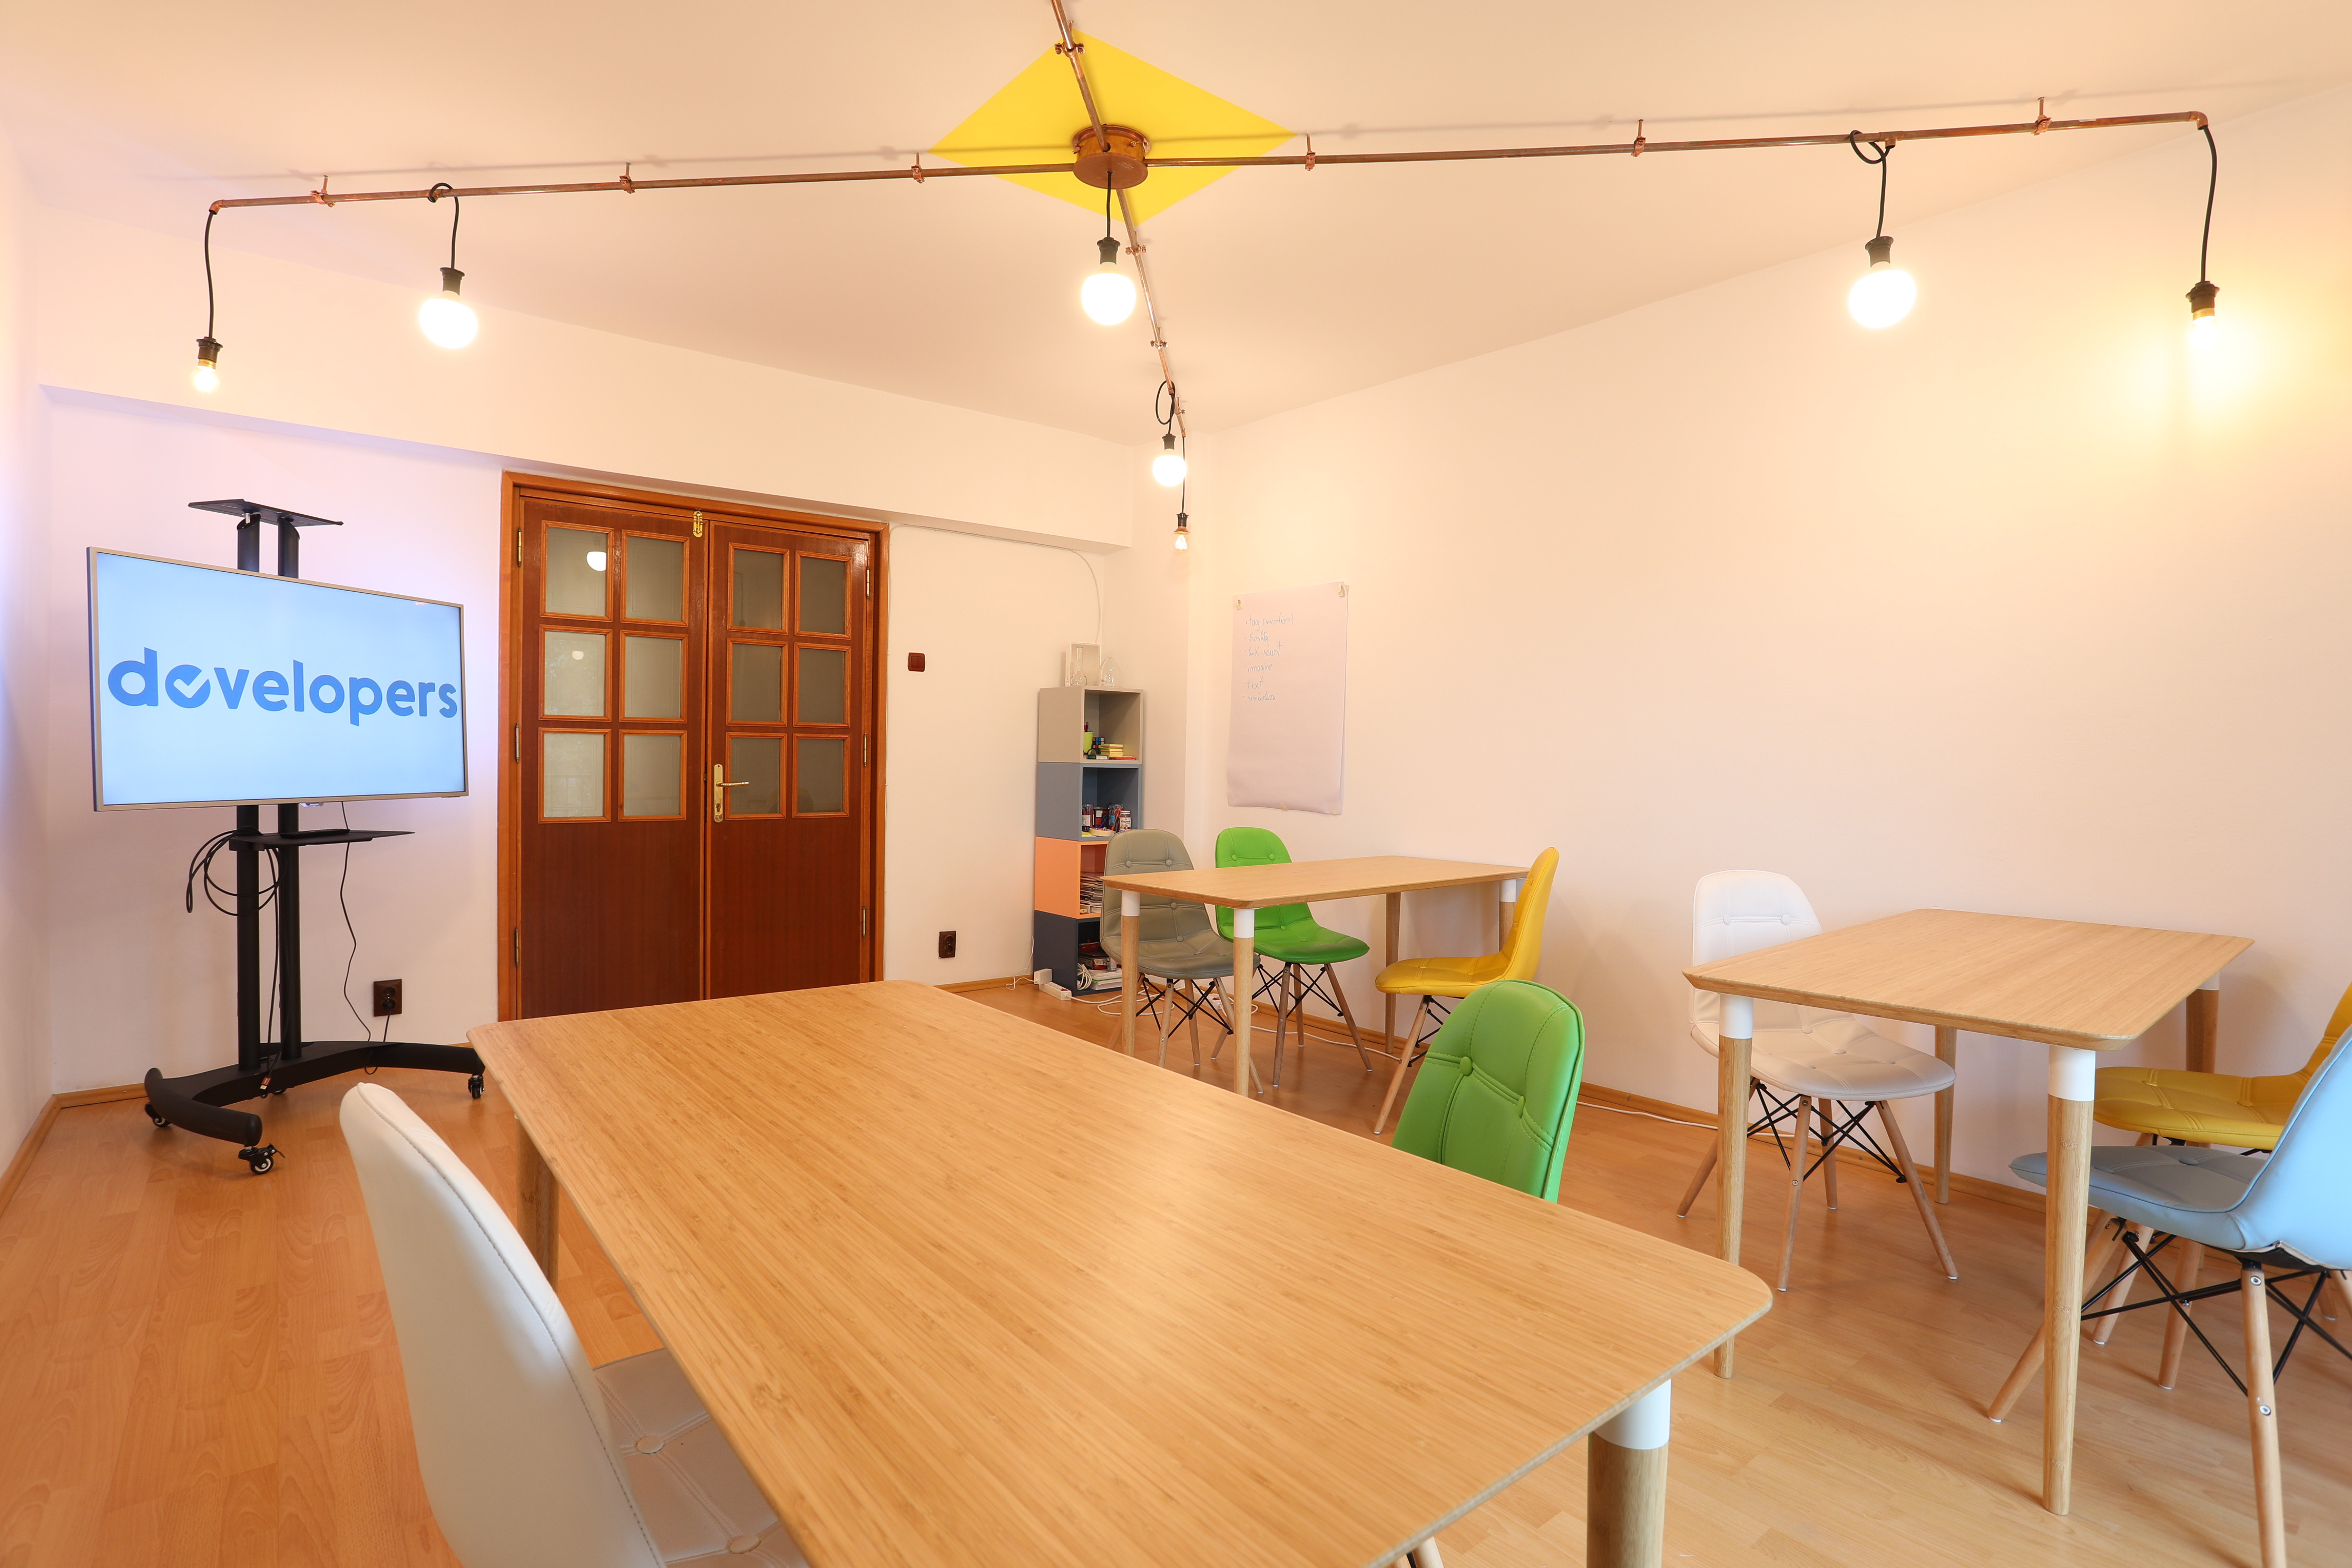 our learning space rent for your events